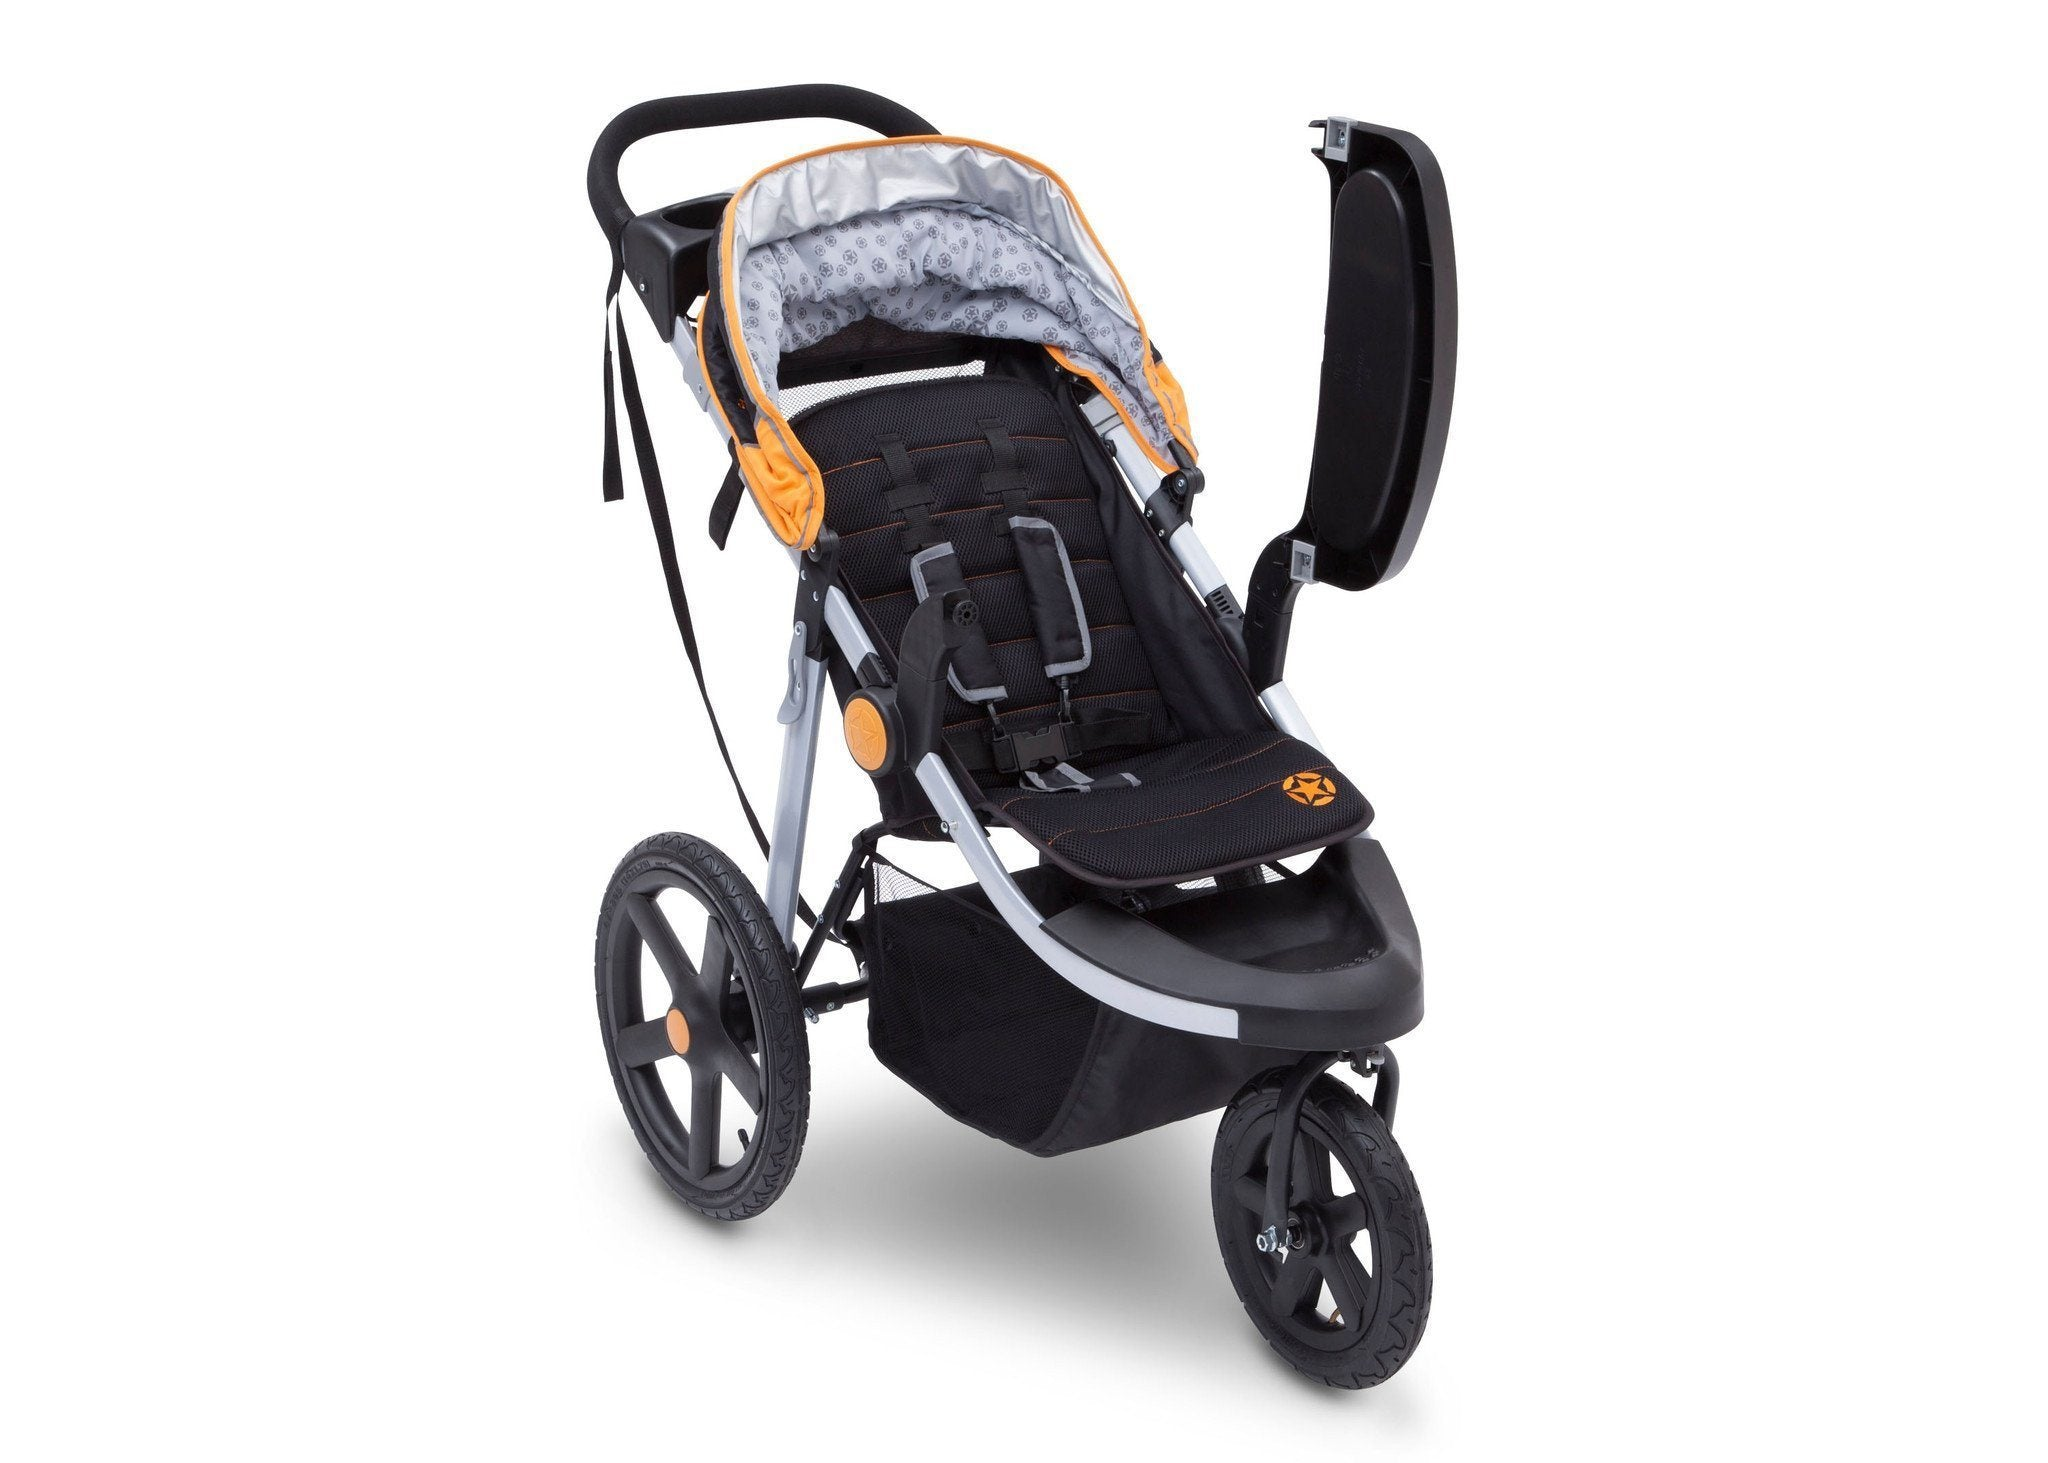 Jeep Adventure All Terrain Jogger Stroller by Delta Children, Galaxy (850), with swing-away child tray for easy infant loading